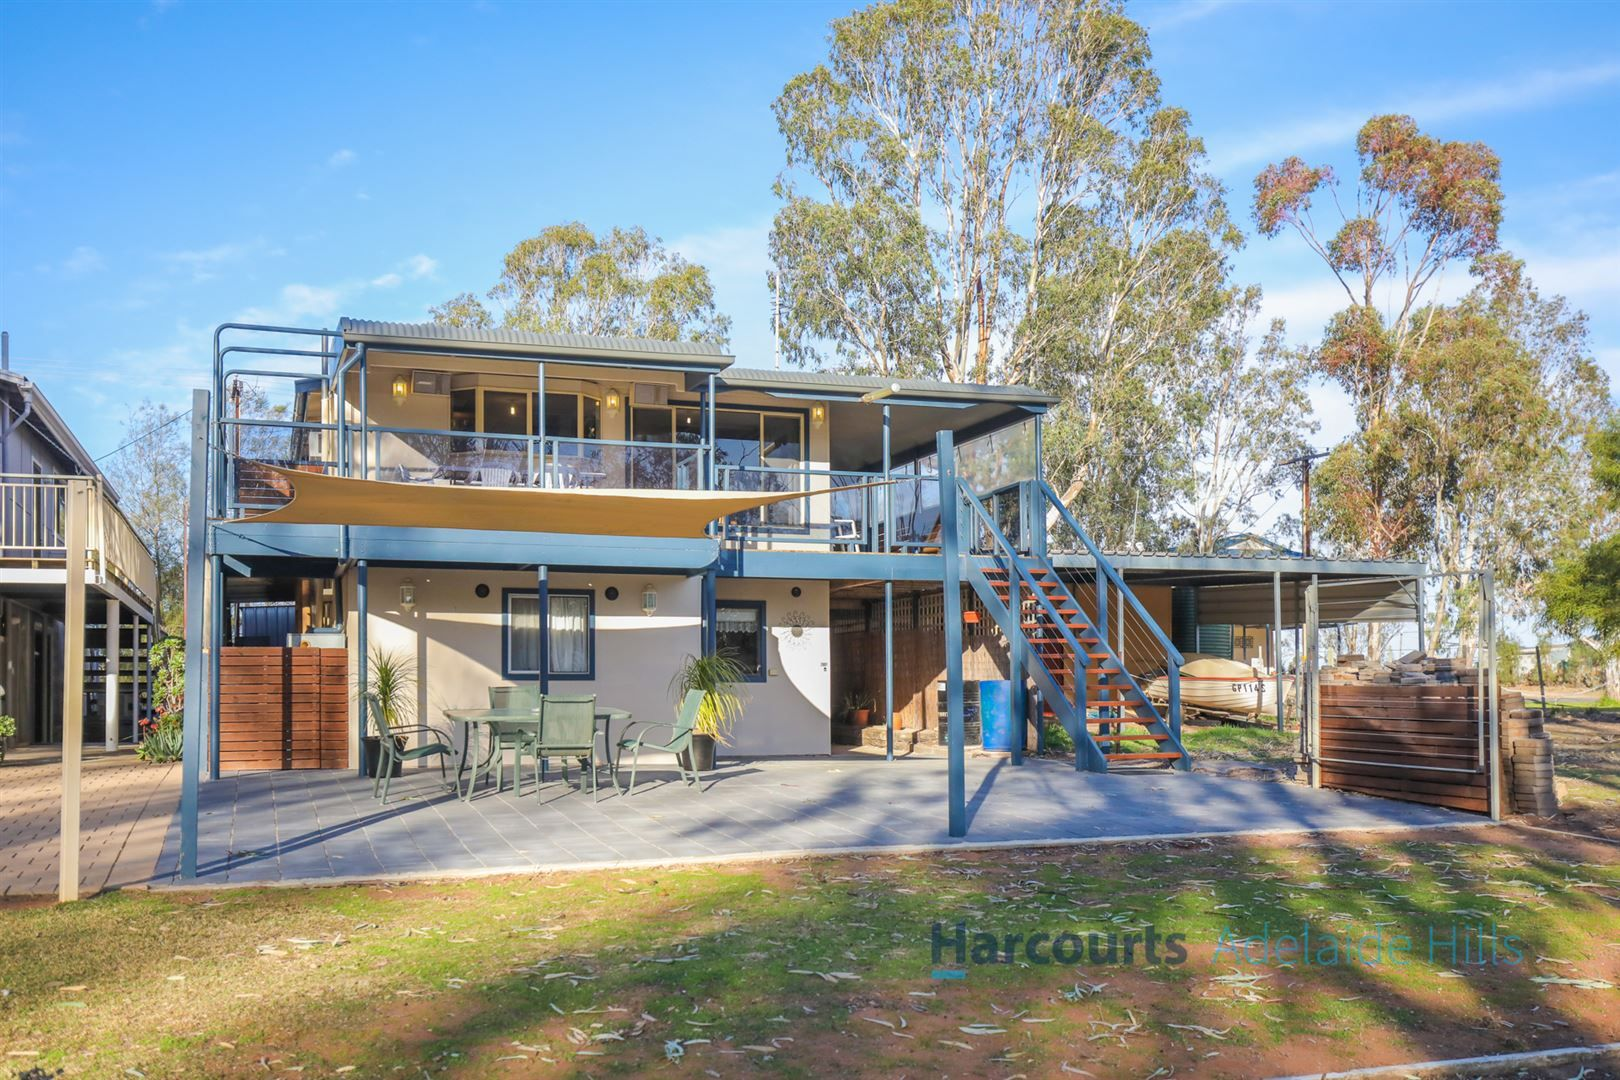 Sold 74 Marks Landing Shack Road Swan Reach Sa 5354 On 10